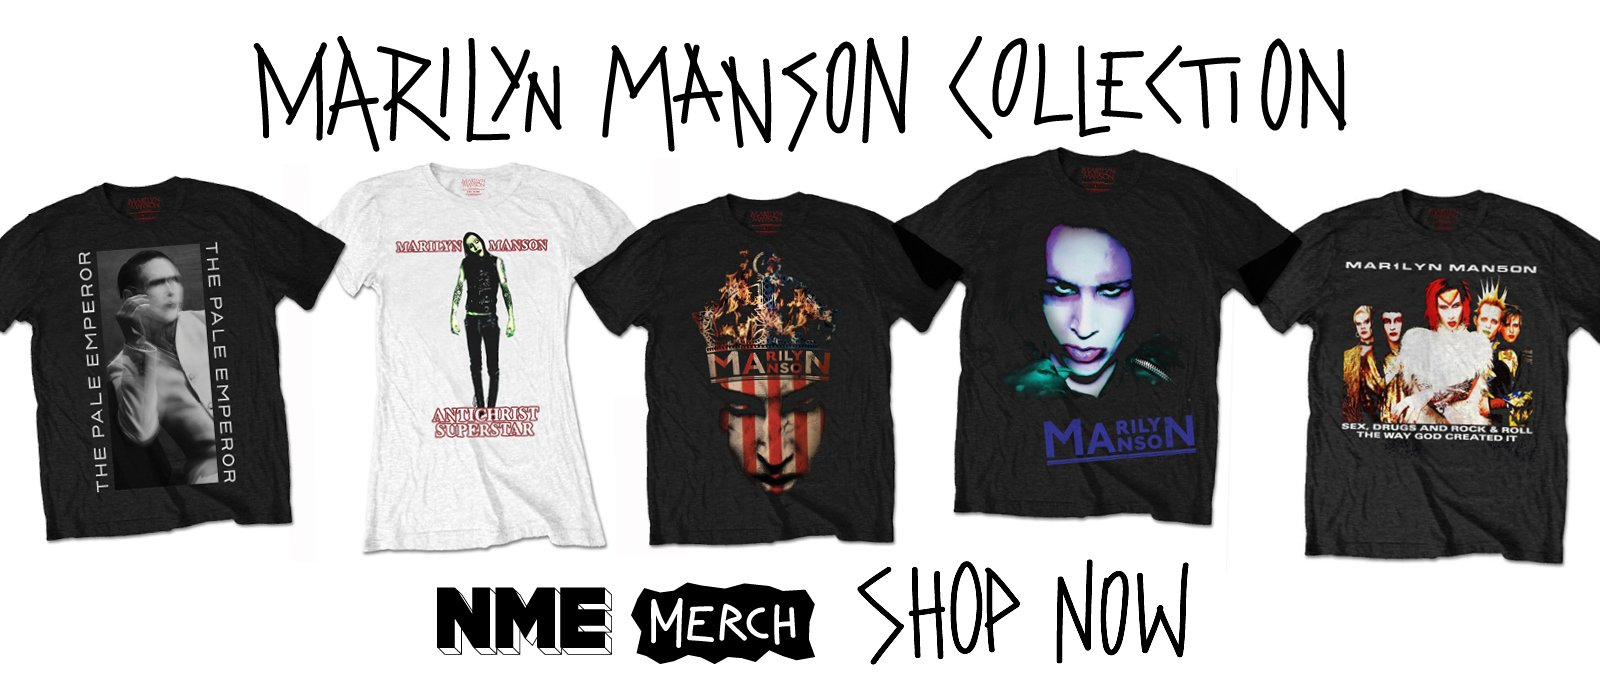 NME Merch Presents: Marilyn Manson collection https://t.co/ySmDph7T9i https://t.co/b1vN1uBvin